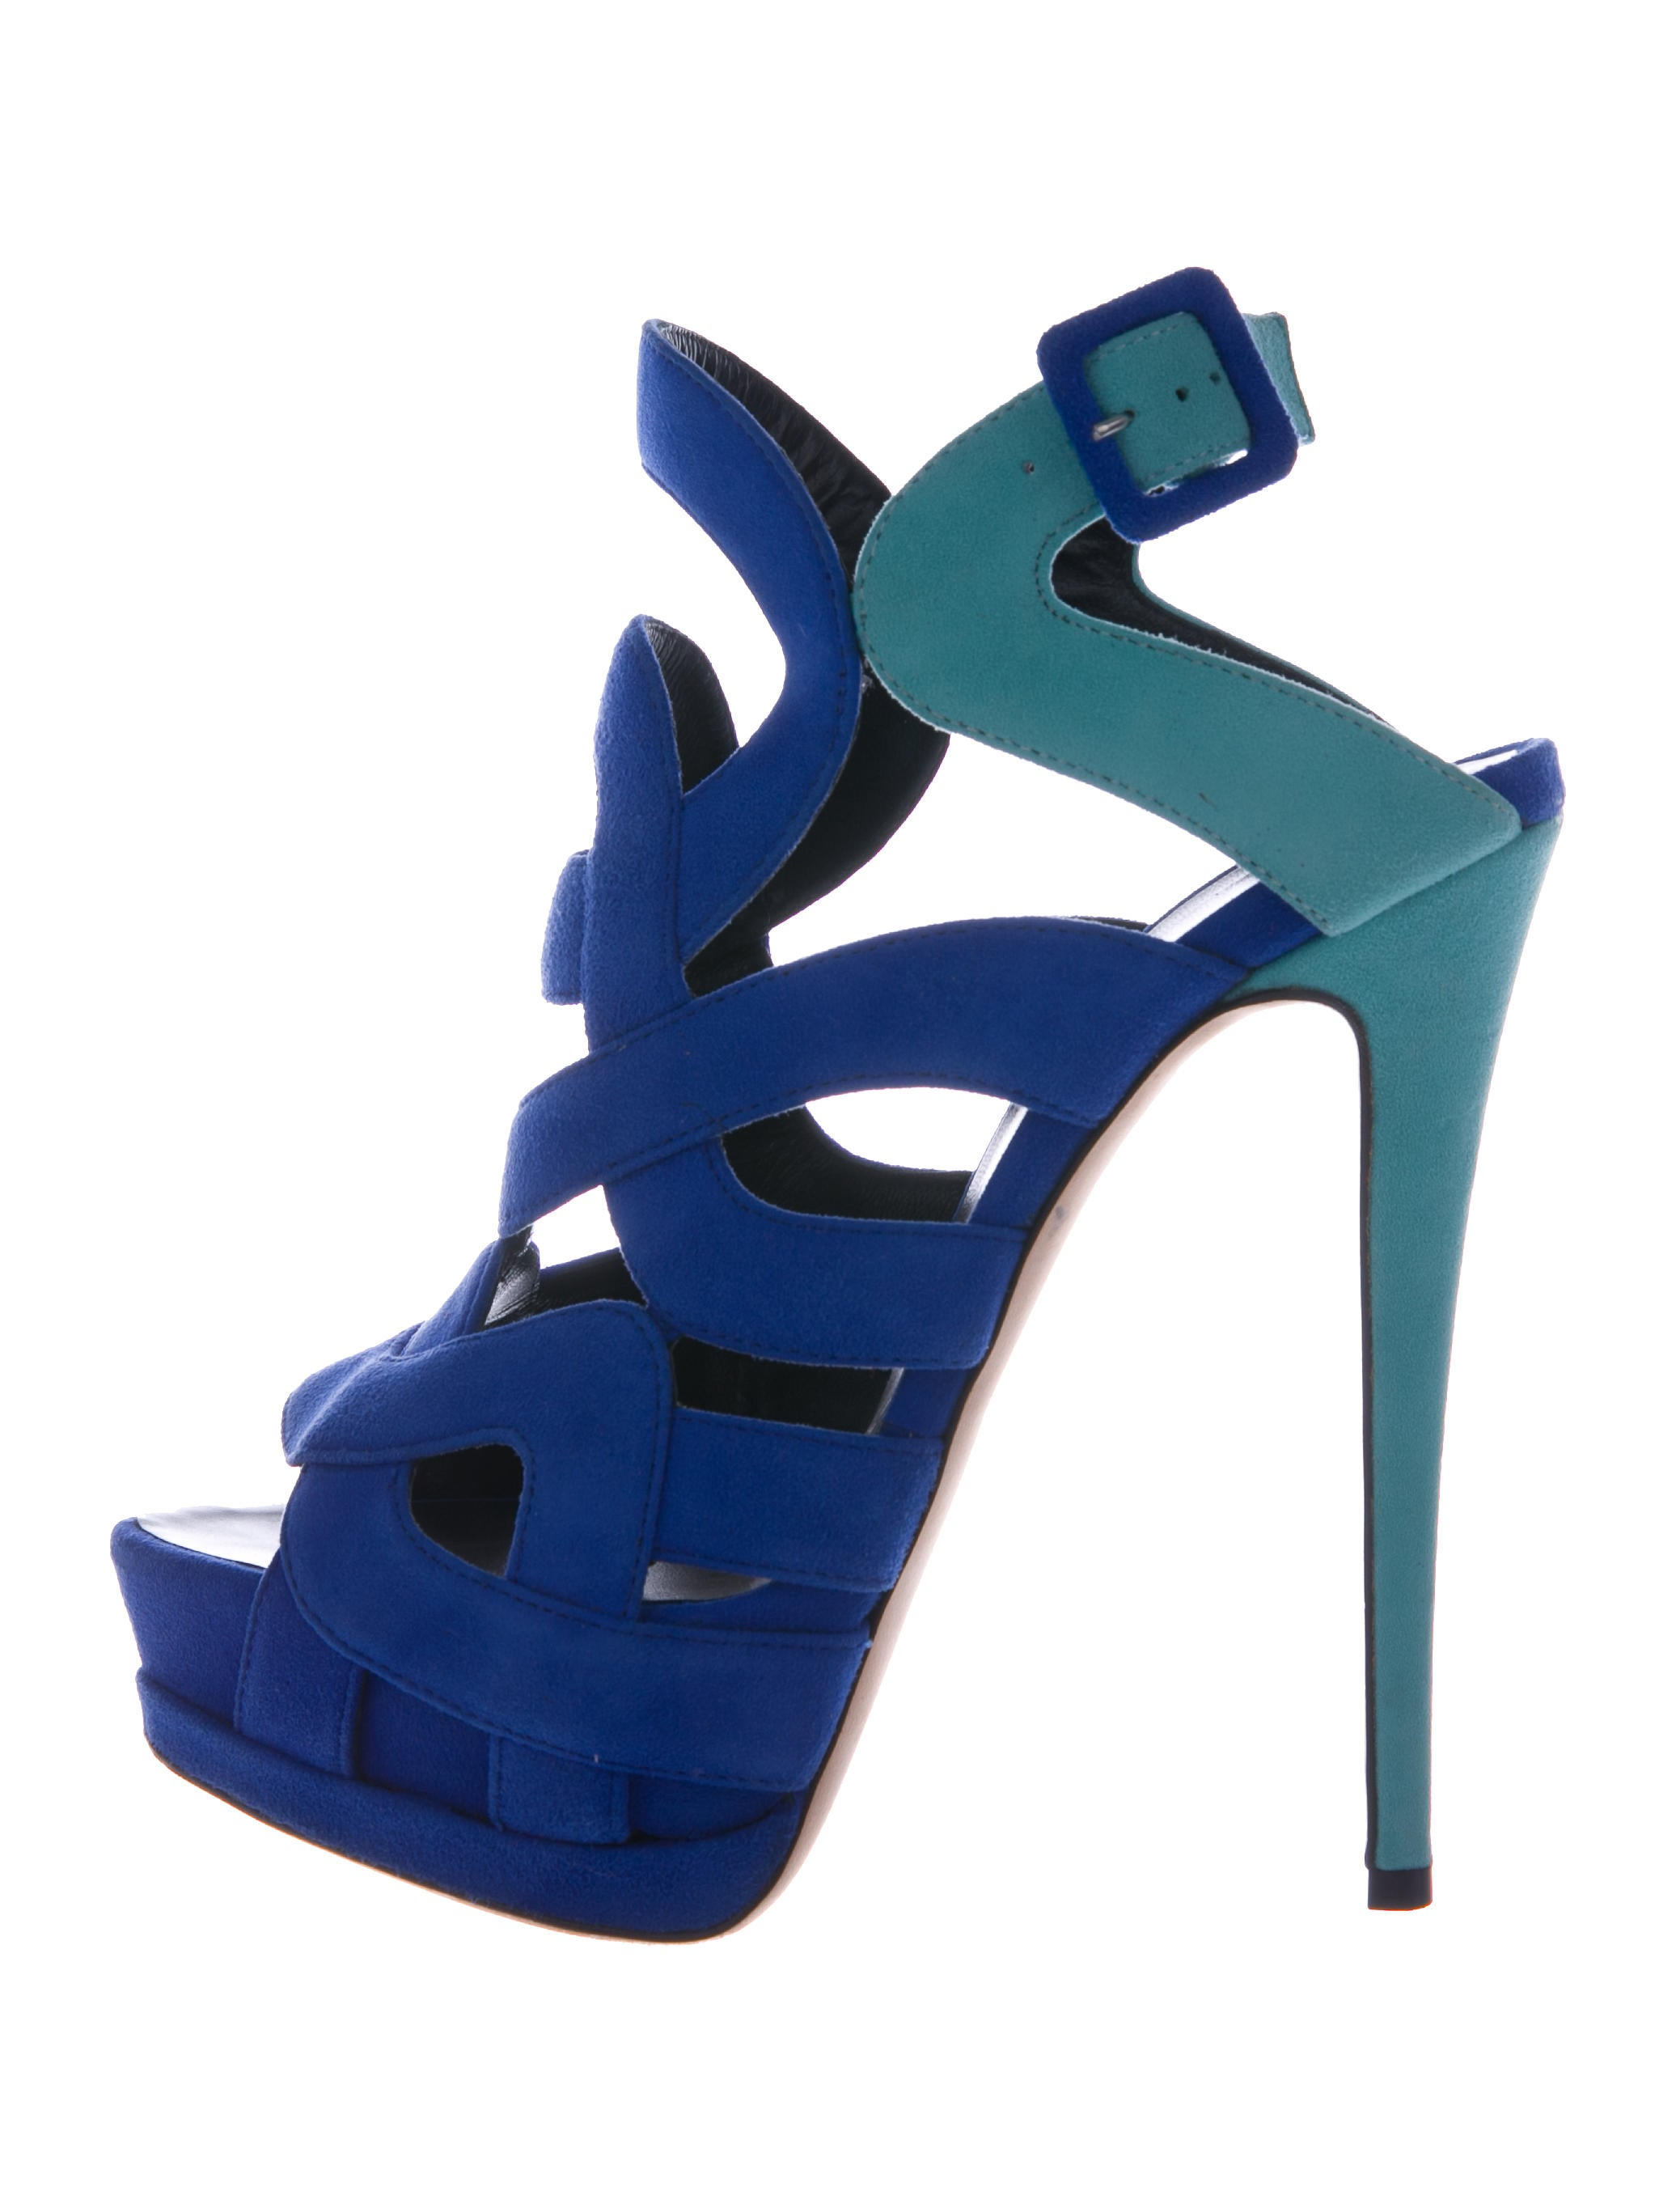 latest collections online Giuseppe Zanotti Bicolor Caged Sandals clearance pictures cheap footlocker finishline clearance good selling UmQoIMJLtf